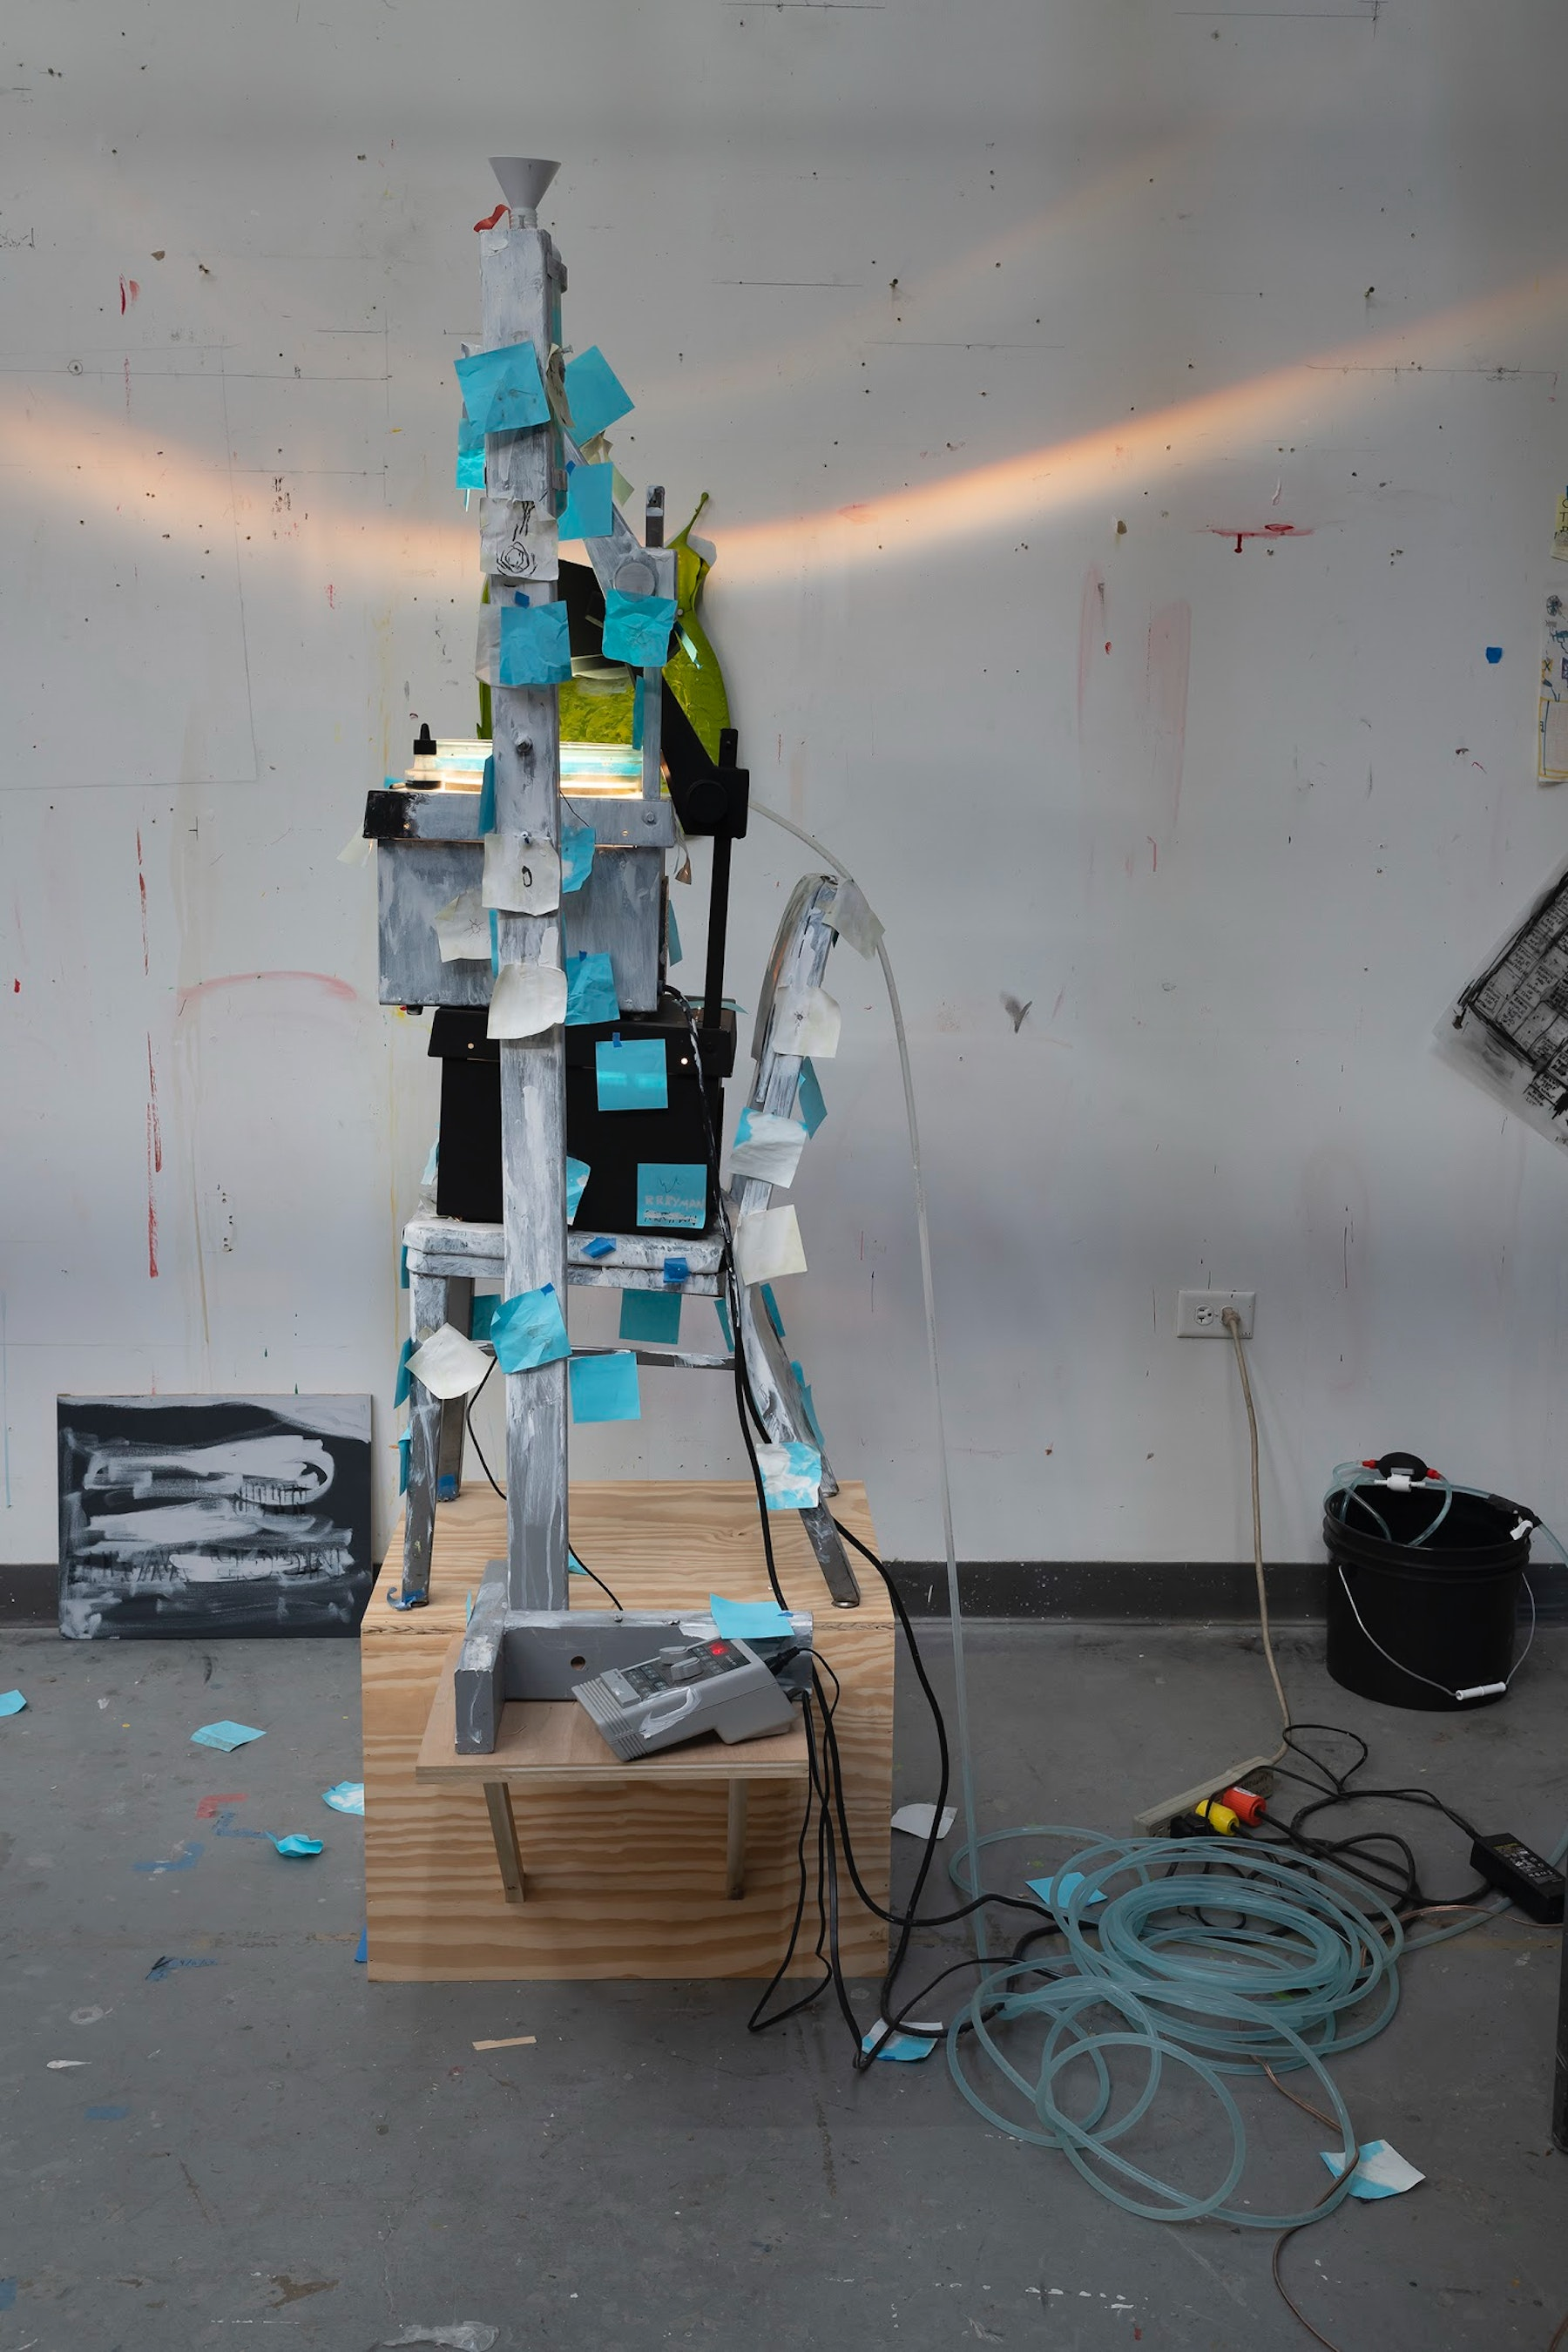 """Pope.L """"I Machine,"""" 2014 - 2020 (2) overhead projectors, acrylic and graphite on canvas, speakers, microphone, chair, post-its, solenoid, tubing, gralab 451 photo timer, (2) glass trays, funnel with container, wooden box, wooden armature, painter's tape, threaded rod, bucket 79.5 x 36 x 30"""" [HxWxD] (201.93 x 91.44 x 76.2 cm) Inventory #POP345 Courtesy of the Artist and Vielmetter Los Angeles. © Pope.L Photo credit: James Prinz"""